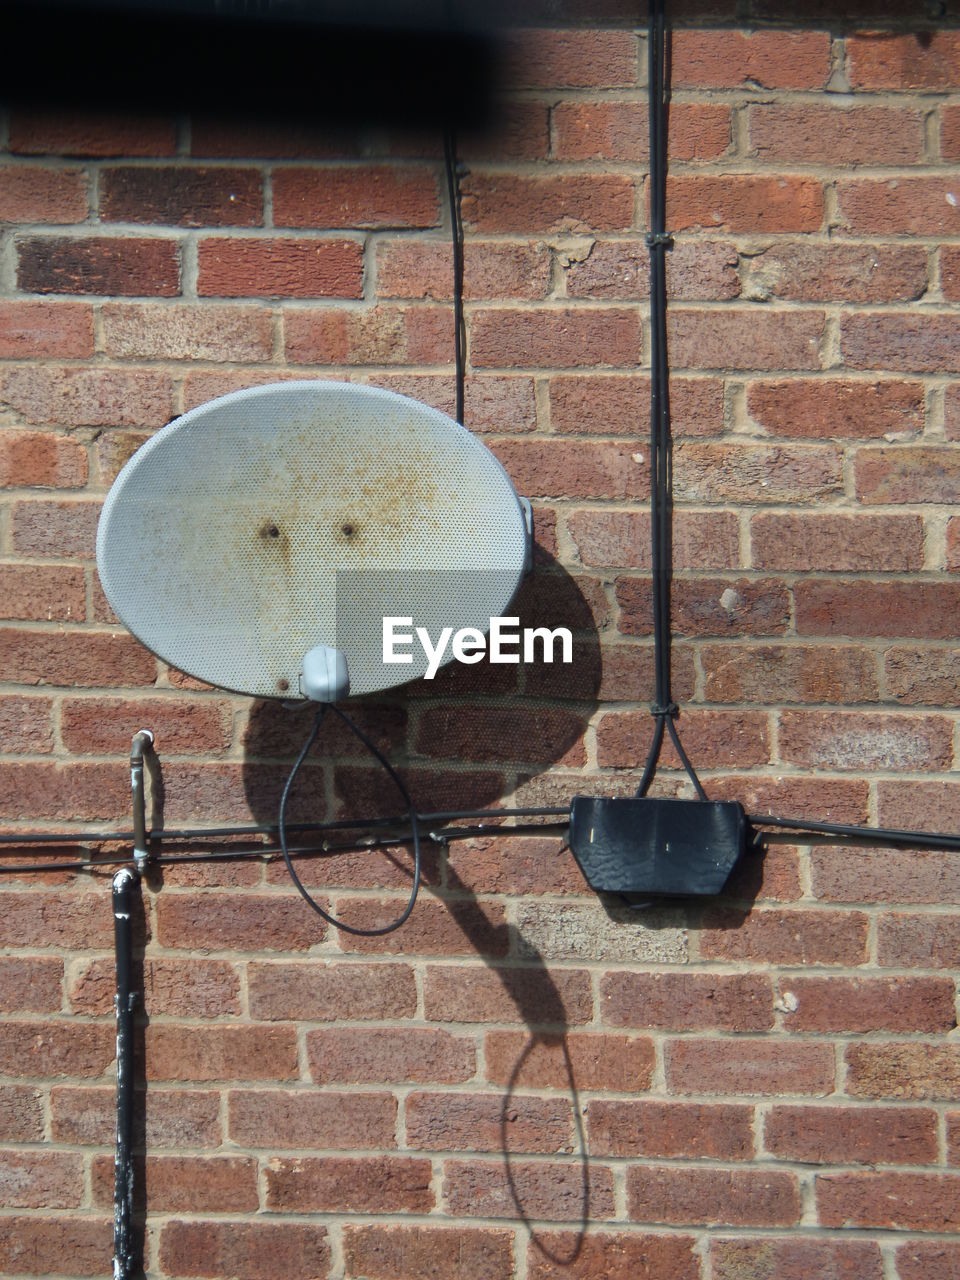 Satellite Dish And Cables On Brick Wall